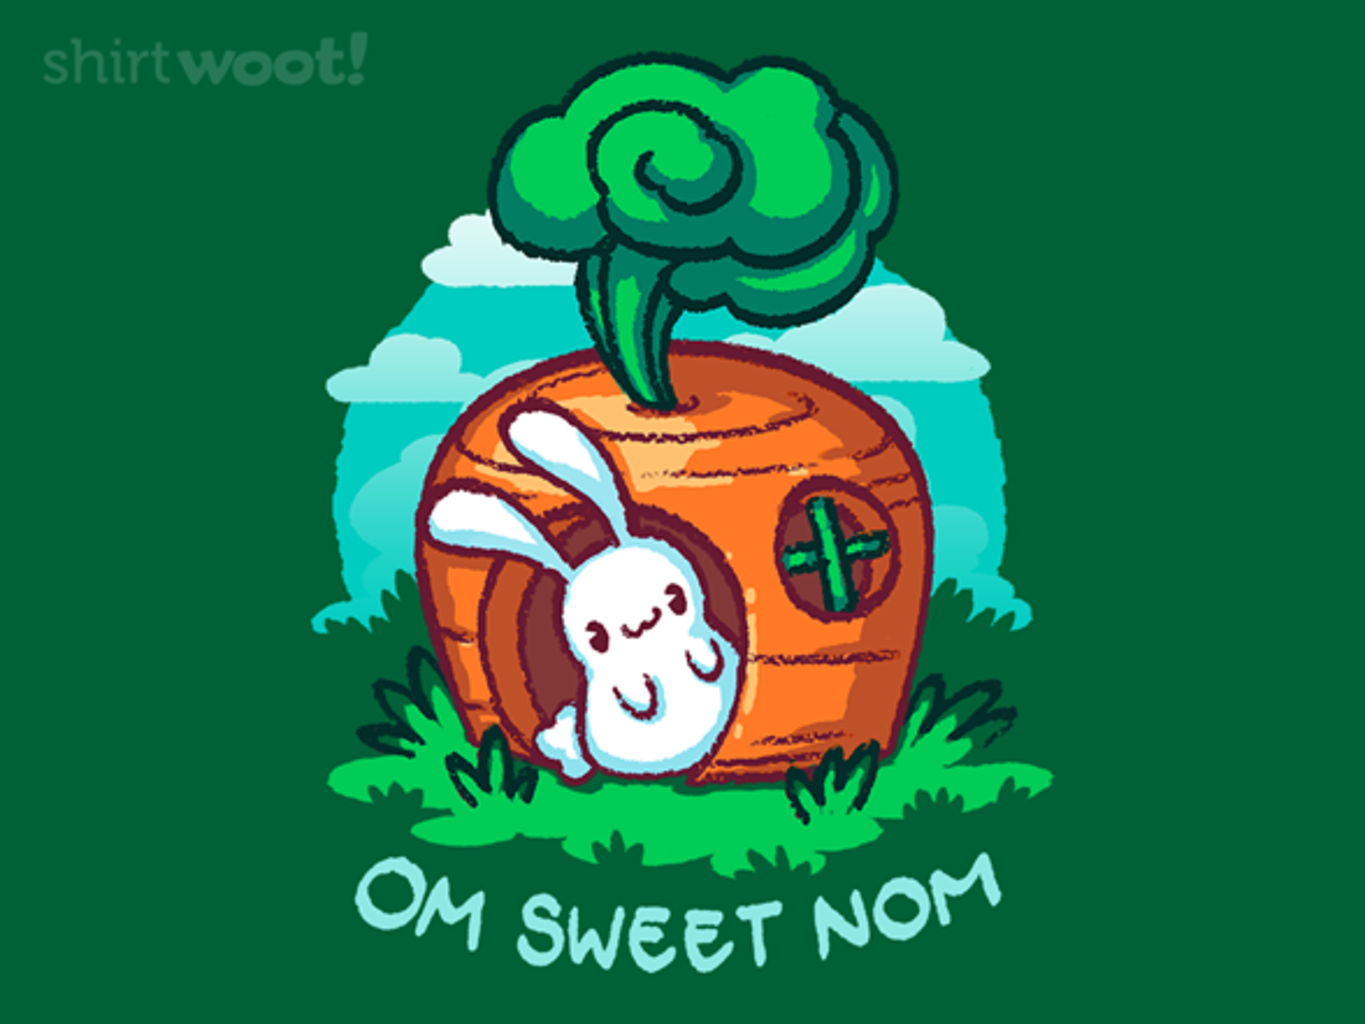 Woot!: Om Sweet Nom - $15.00 + Free shipping